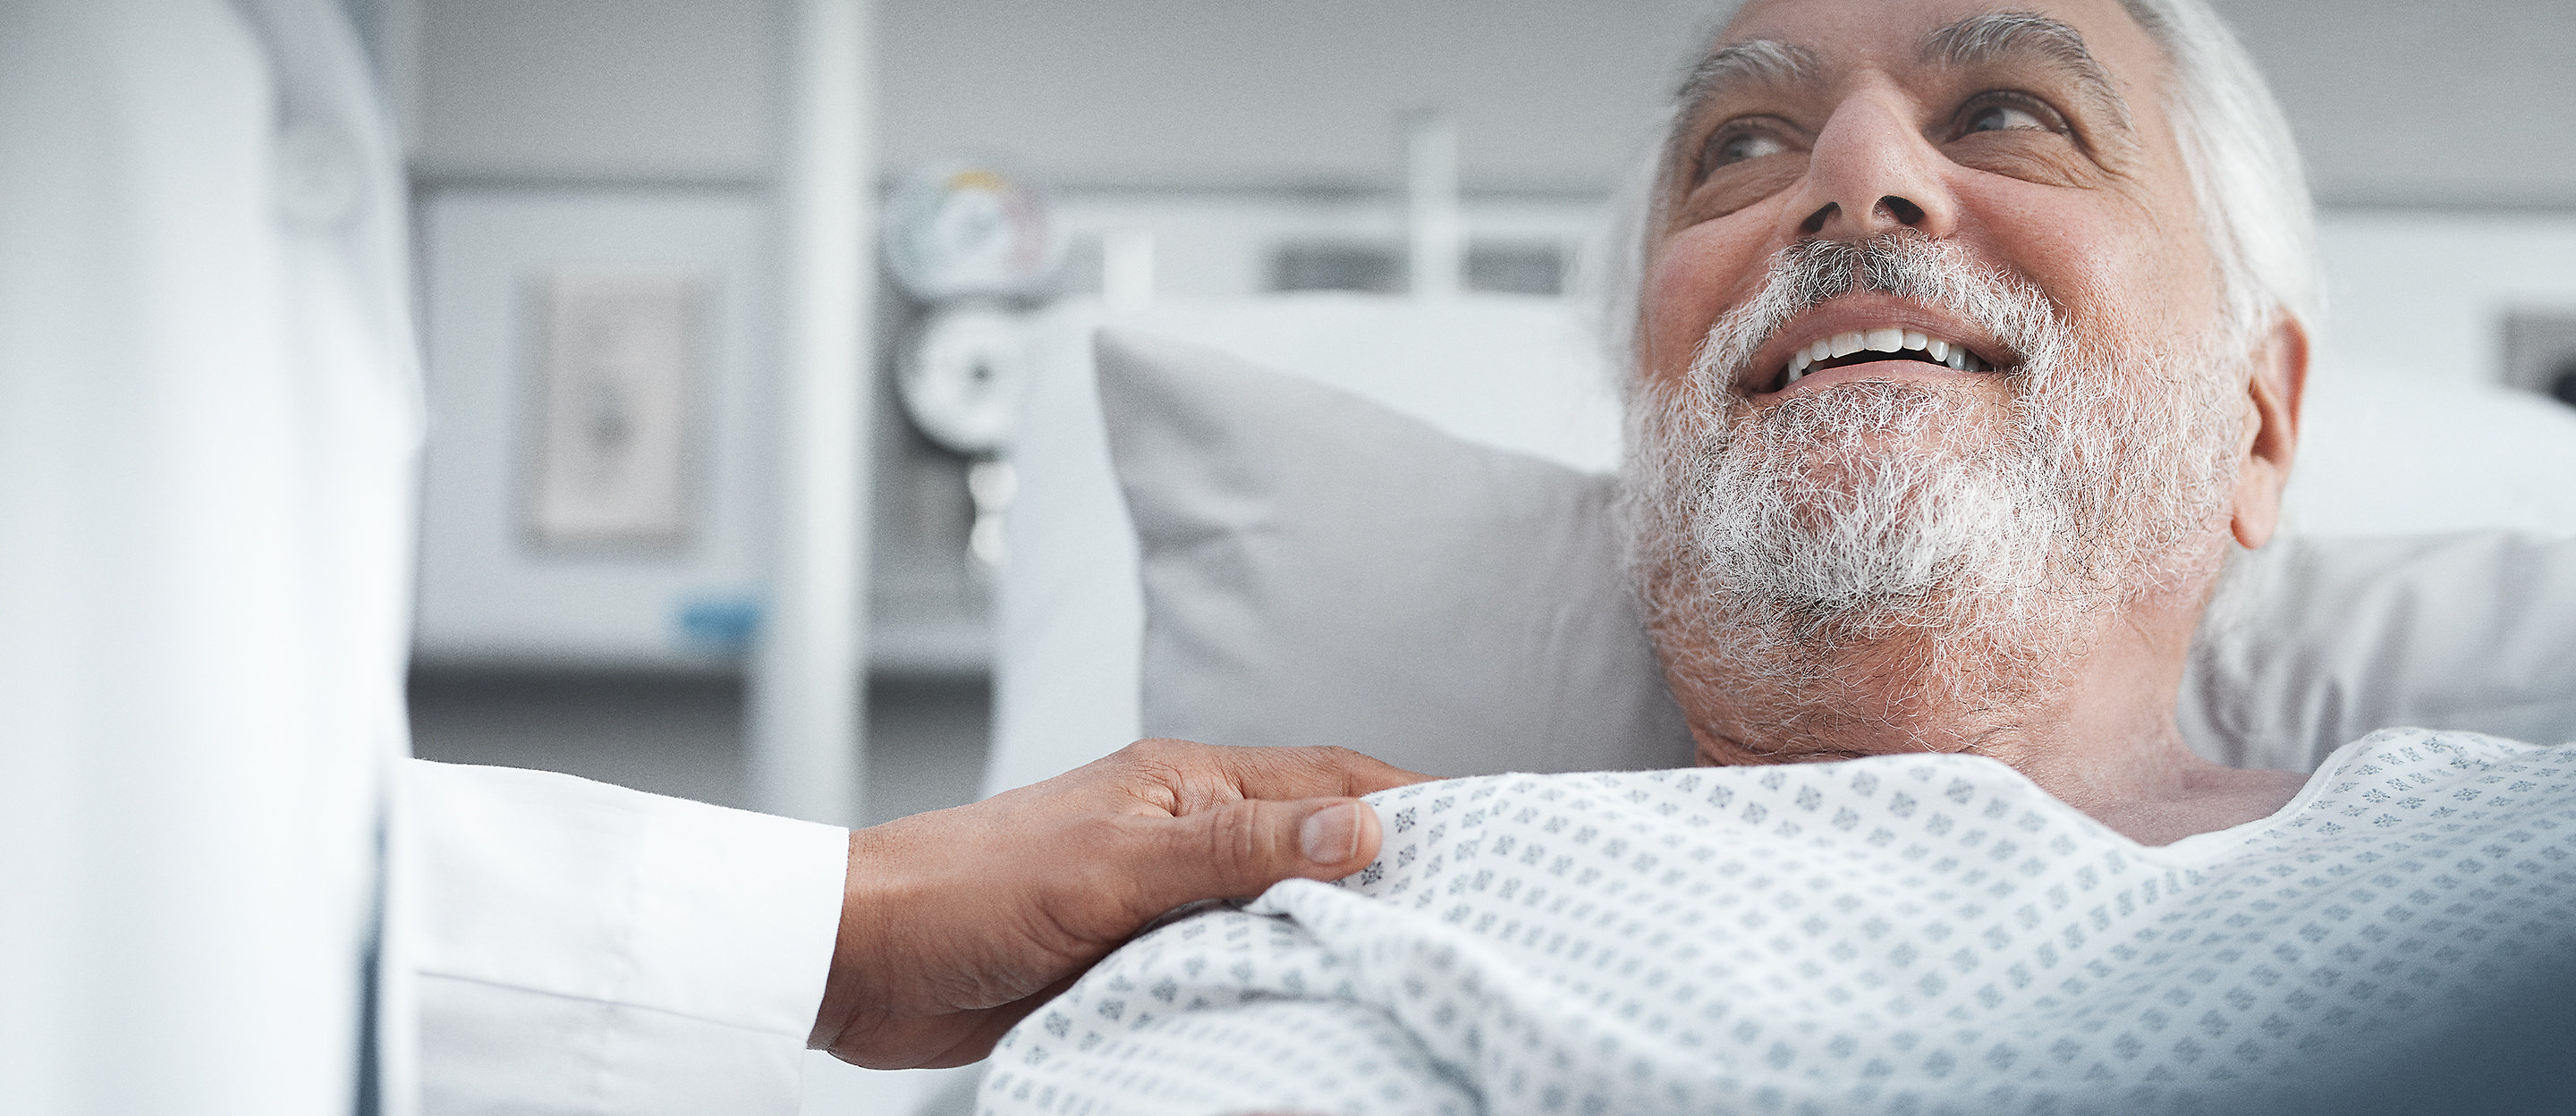 A physician comforts and older male patient, lying in a hospital bed, placing a hand on his shoulder.